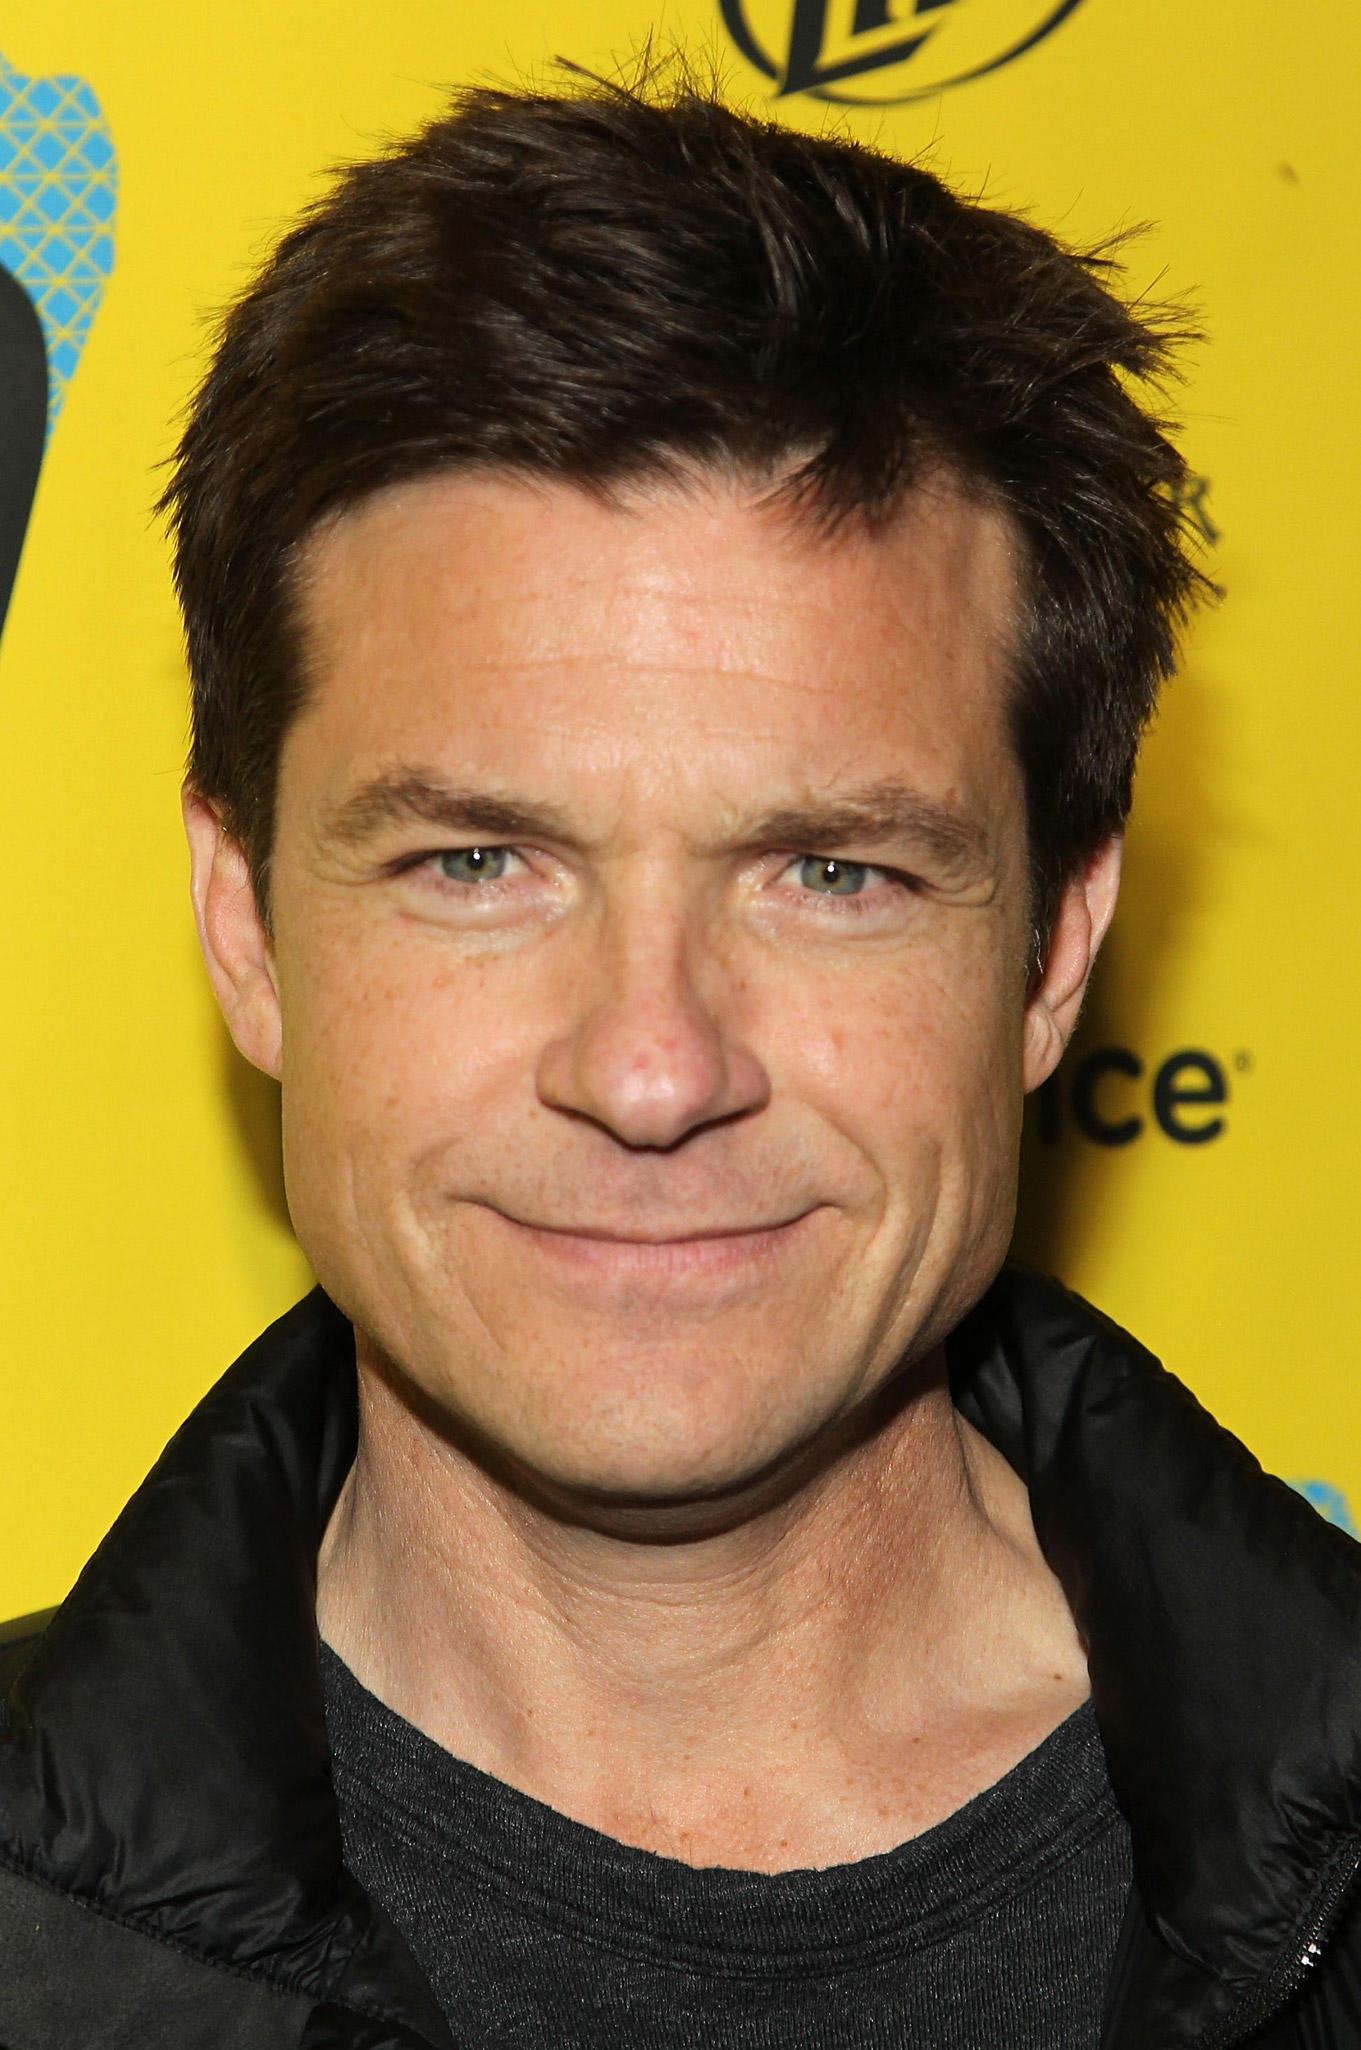 Jason Bateman at the SXSW Red Carpet Premiere of